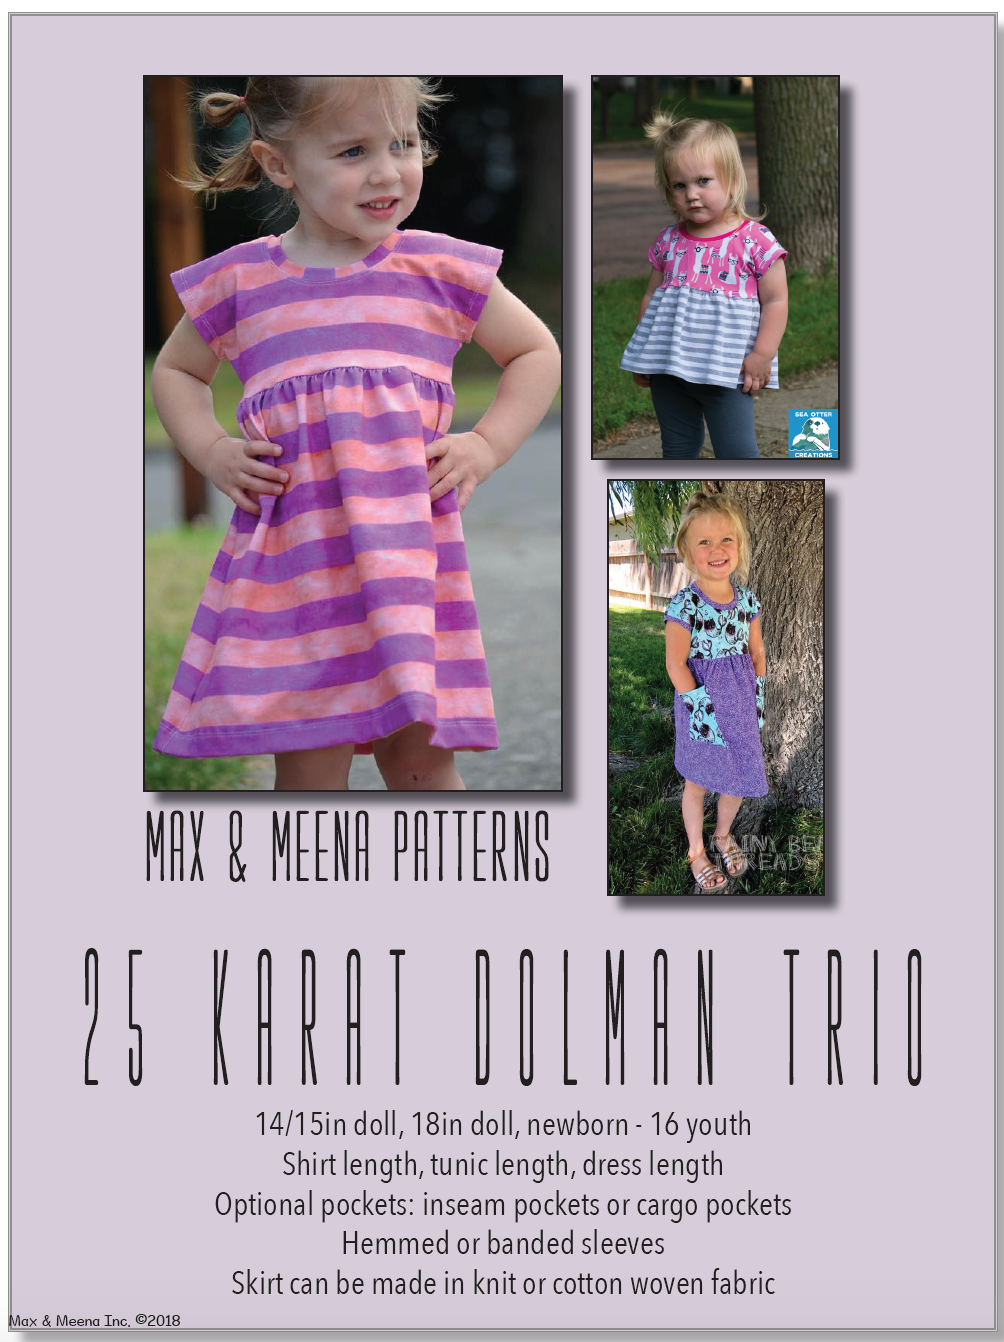 25 Karat Dolman Trio SEWING PDF PATTERN **Projector/A0 Friendly**